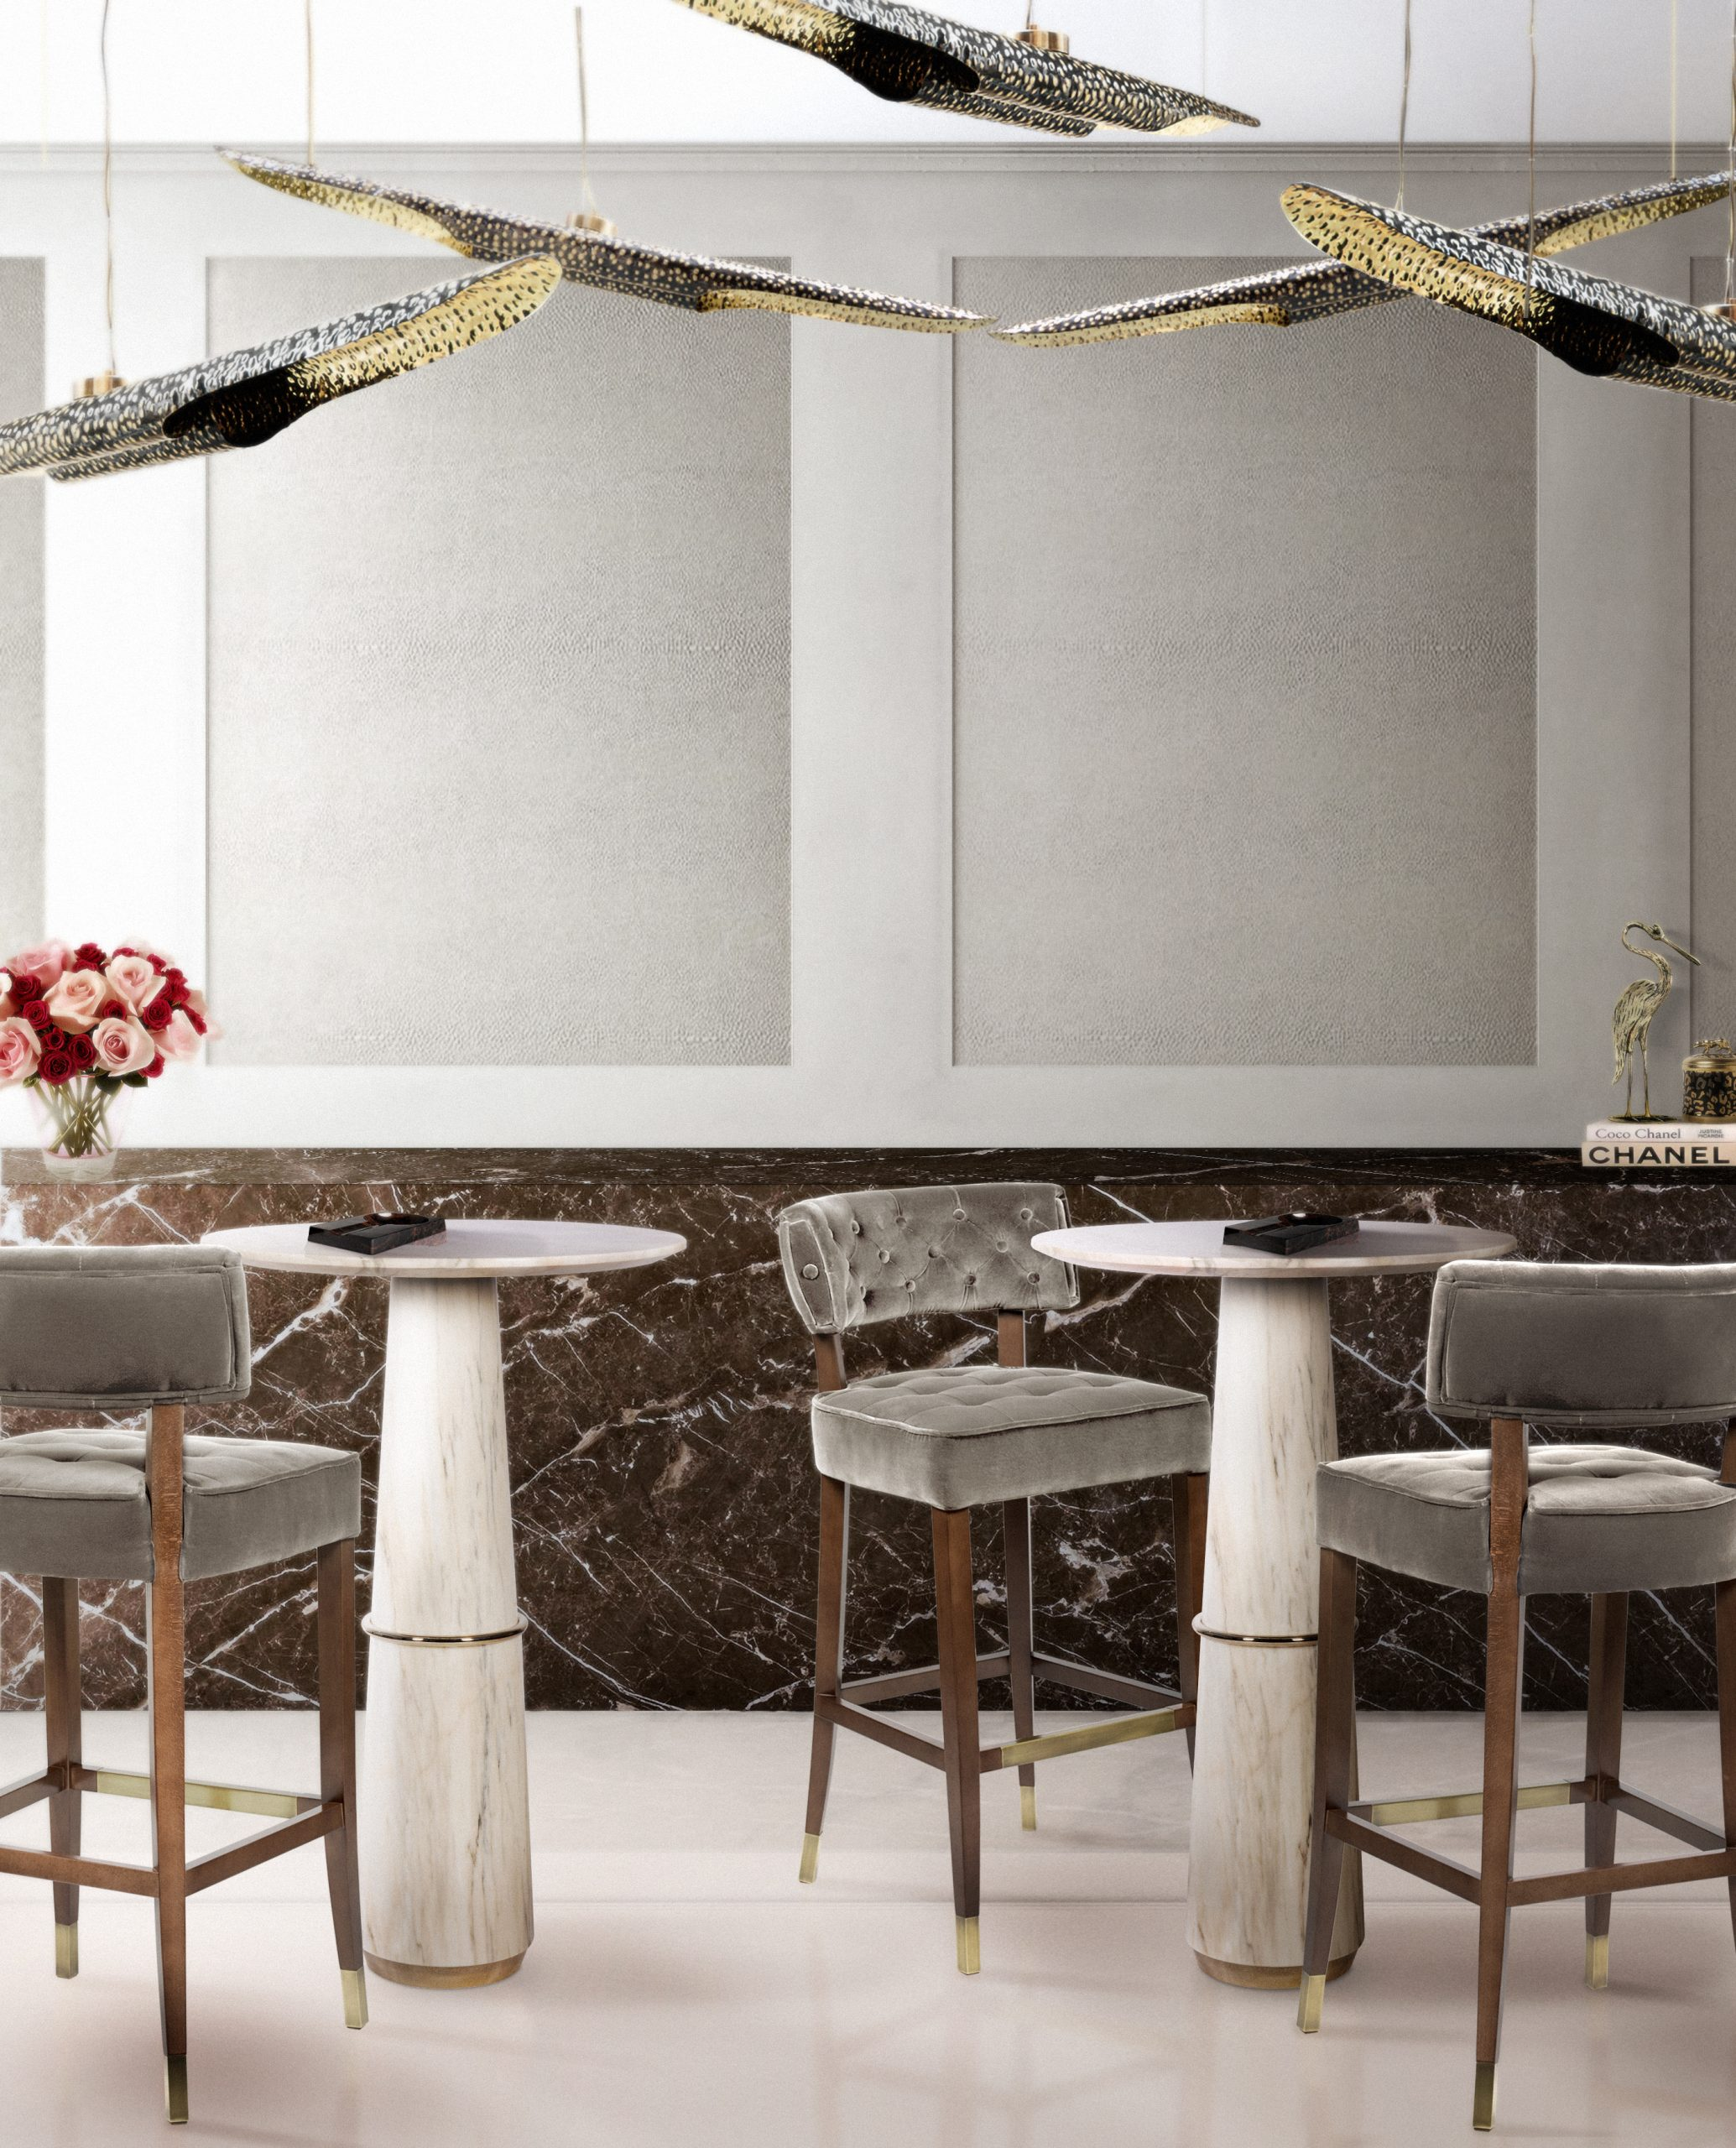 20 Stylish Dining Seating Options For Modern Hotels dining seating 20 Stylish Dining Seating Options For Modern Hotels 20 Stylish Dining Seating Options For Modern Hotels 17 scaled